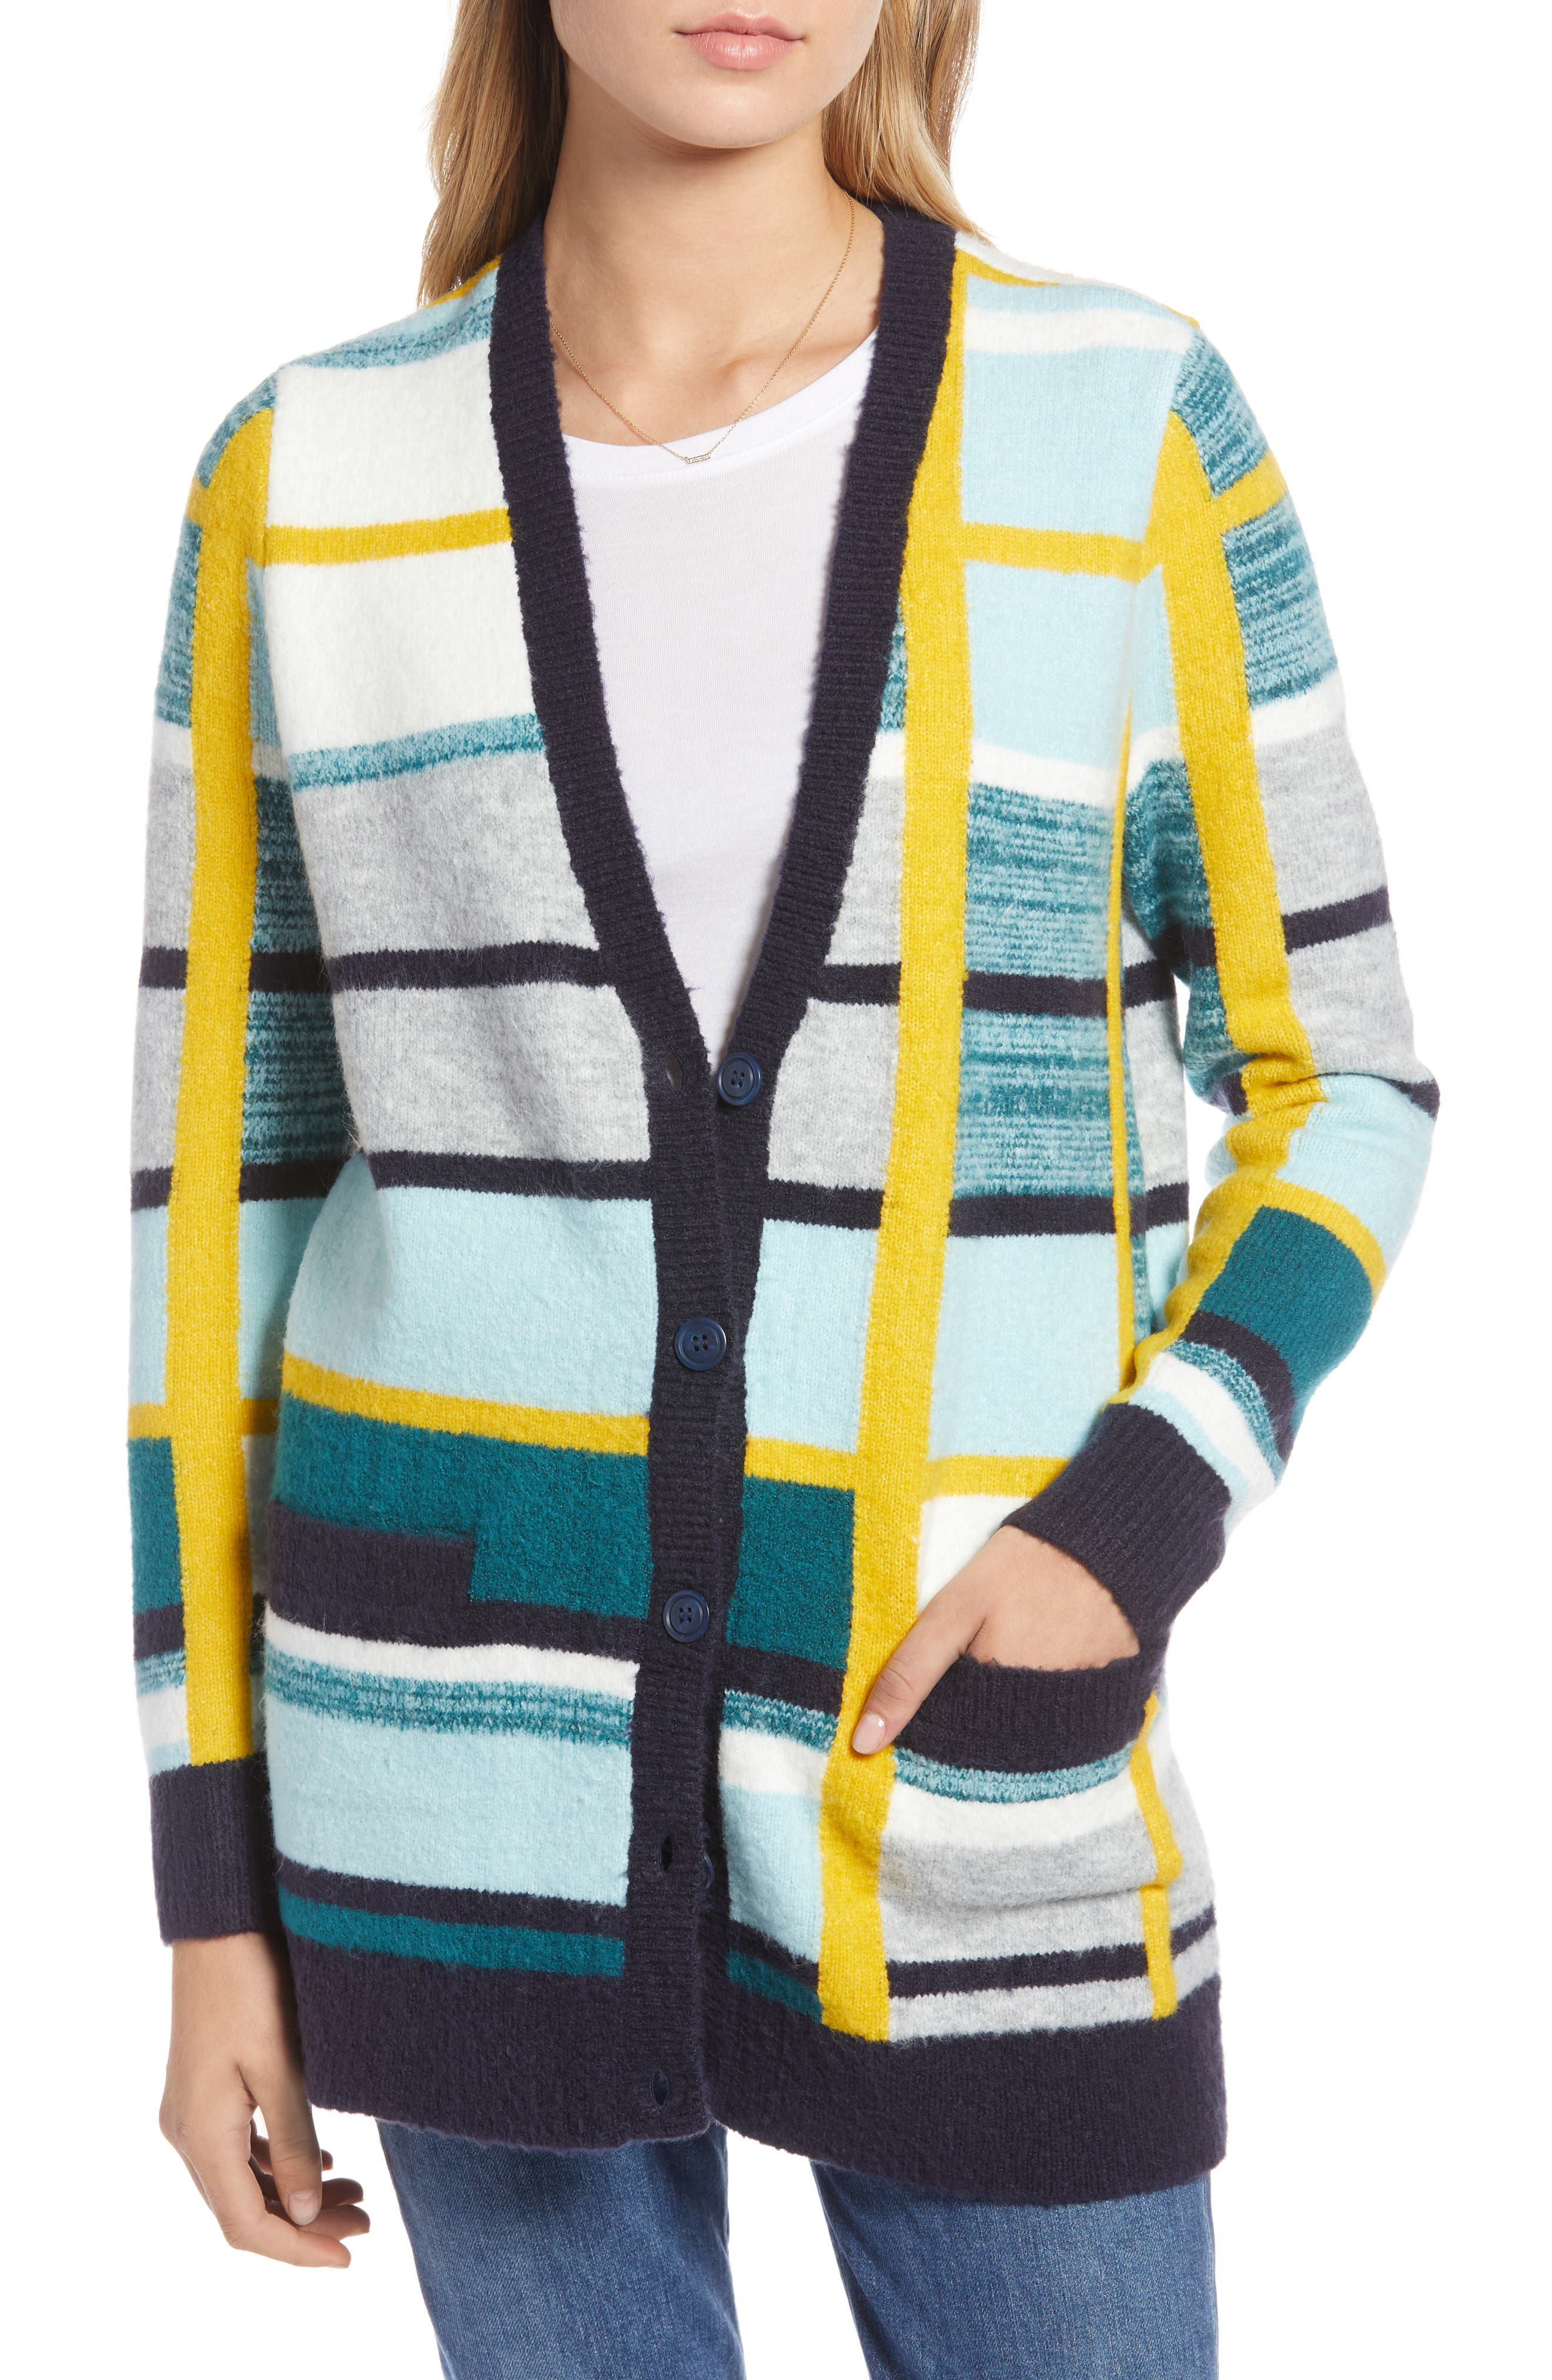 Abstract Plaid Button Front Cardigan Sweater,                             Alternate thumbnail 4, color,                             TEAL ABSTRACT PLAID